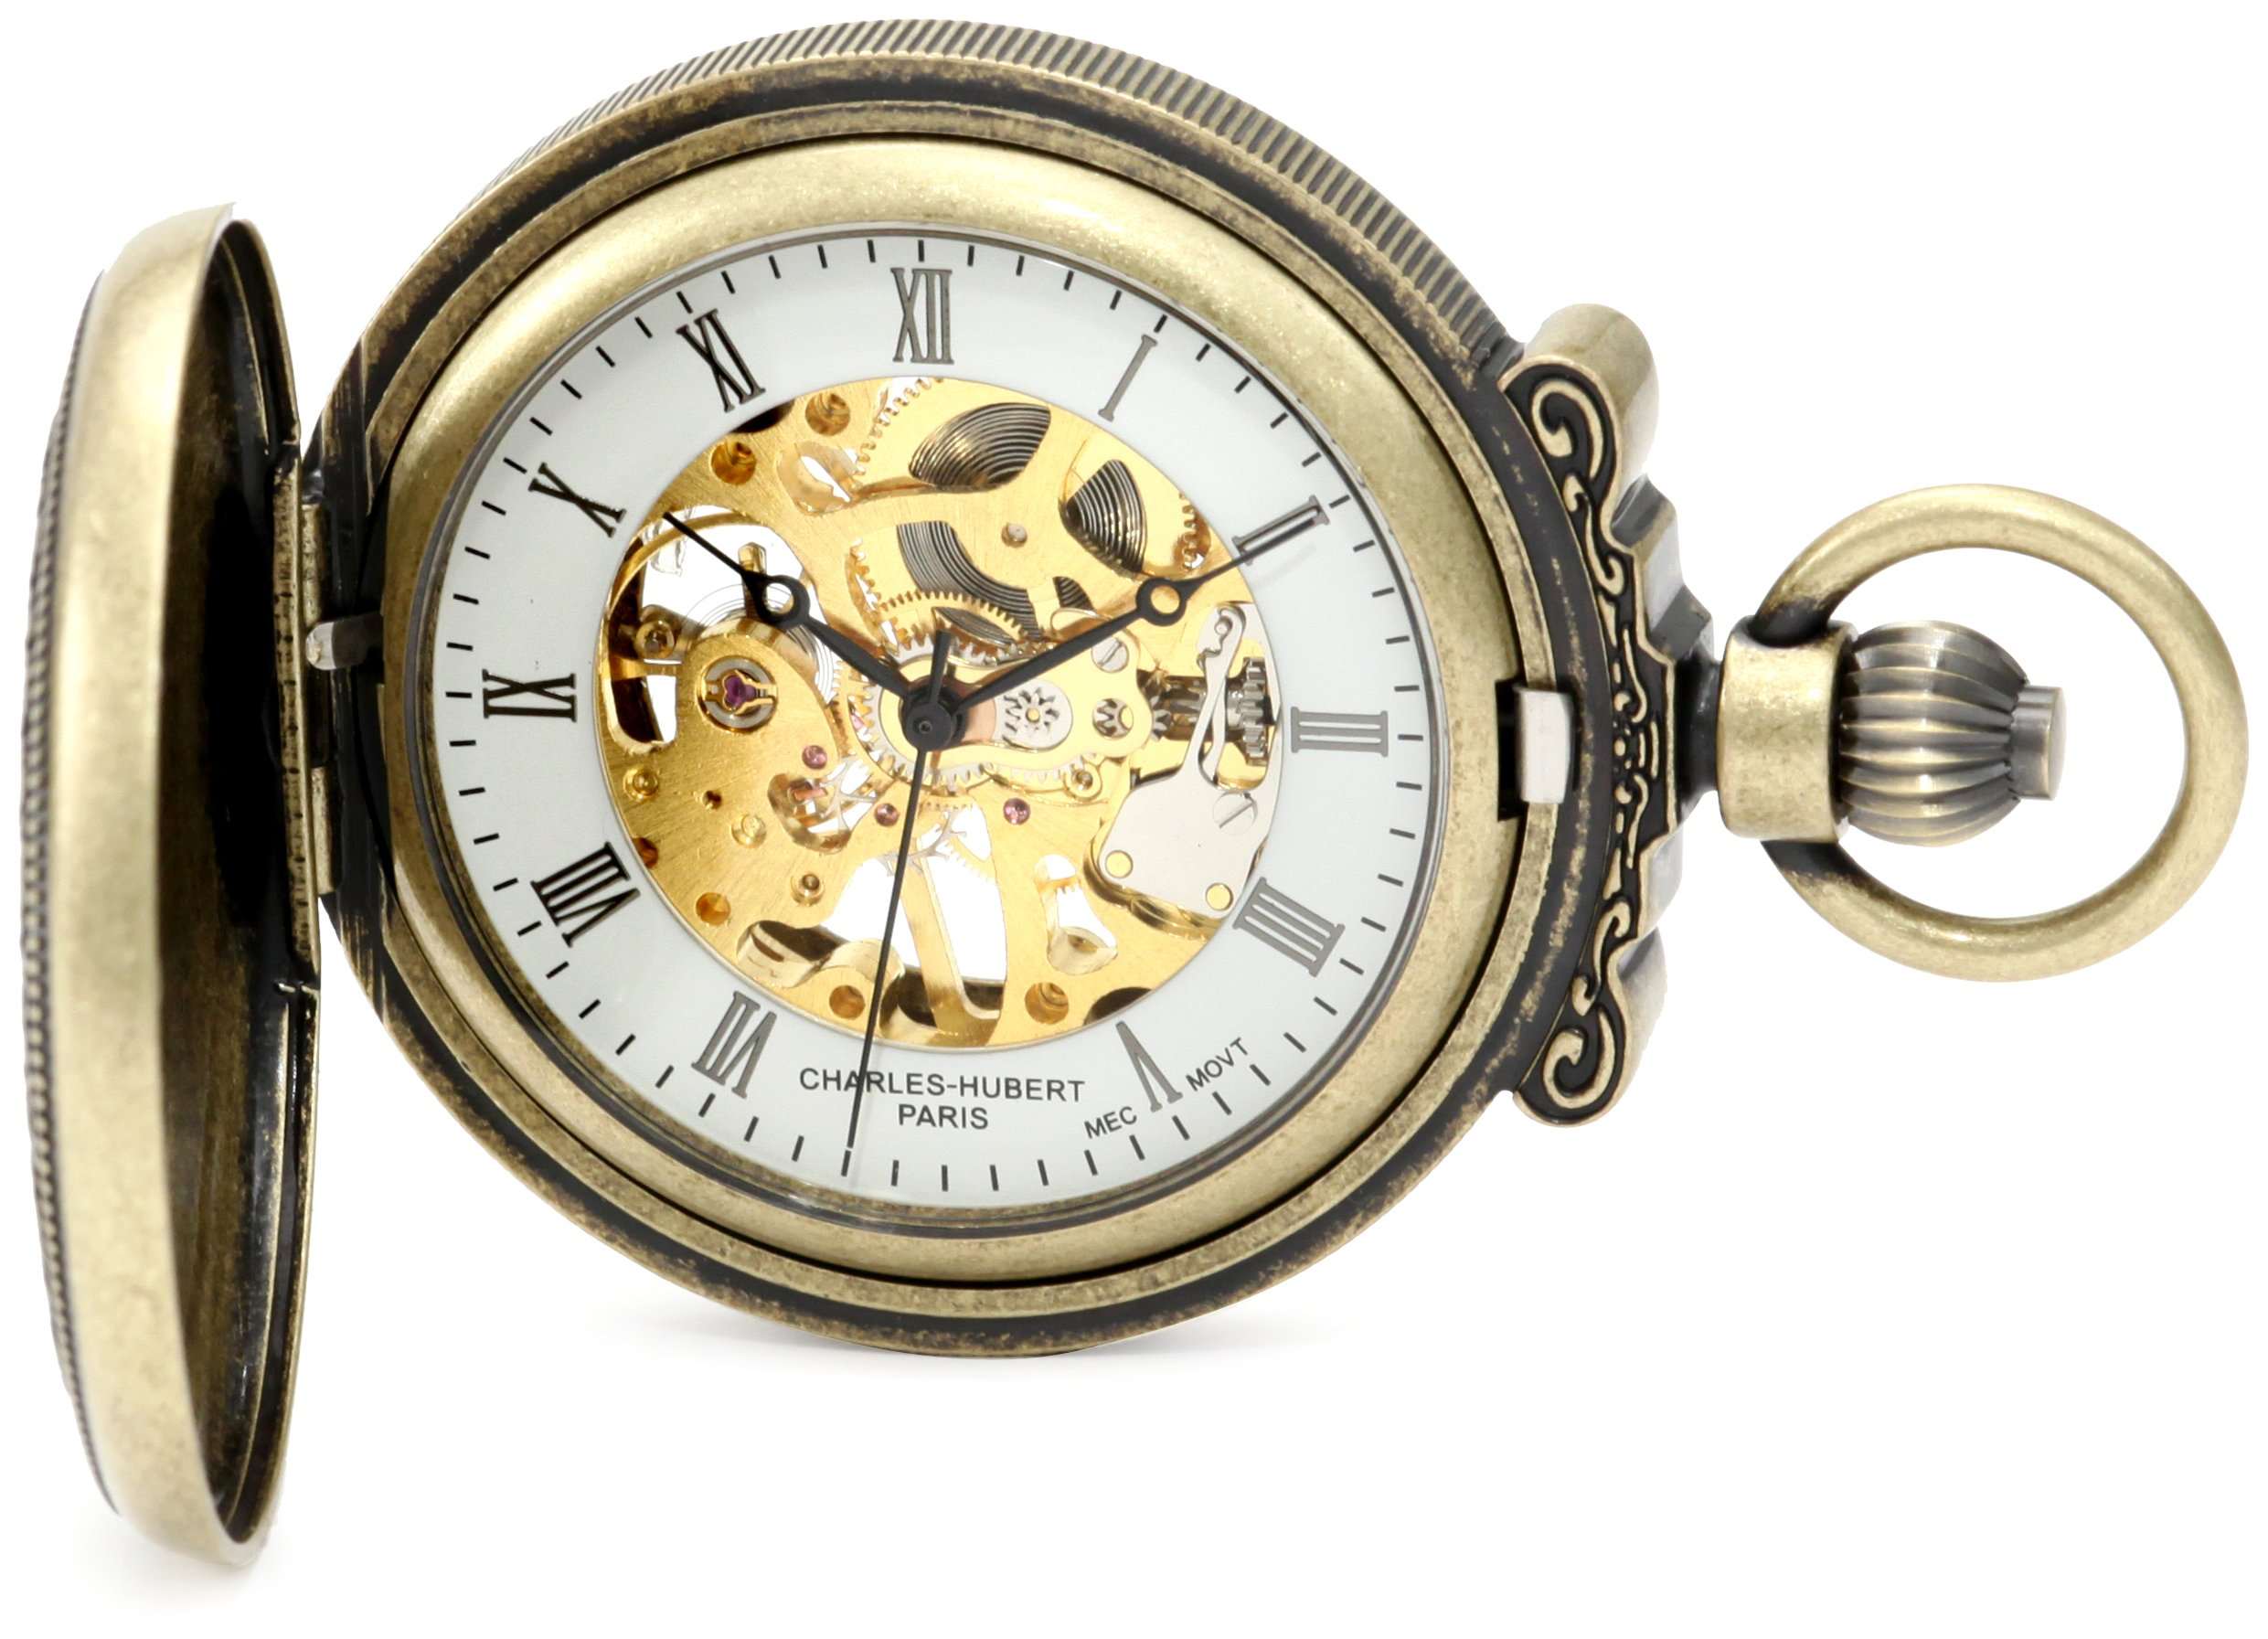 Charles-Hubert, Paris 3865-G Classic Collection Gold-Plated Antiqued Finish Hunter Case Mechanical Pocket Watch by Charles-Hubert, Paris